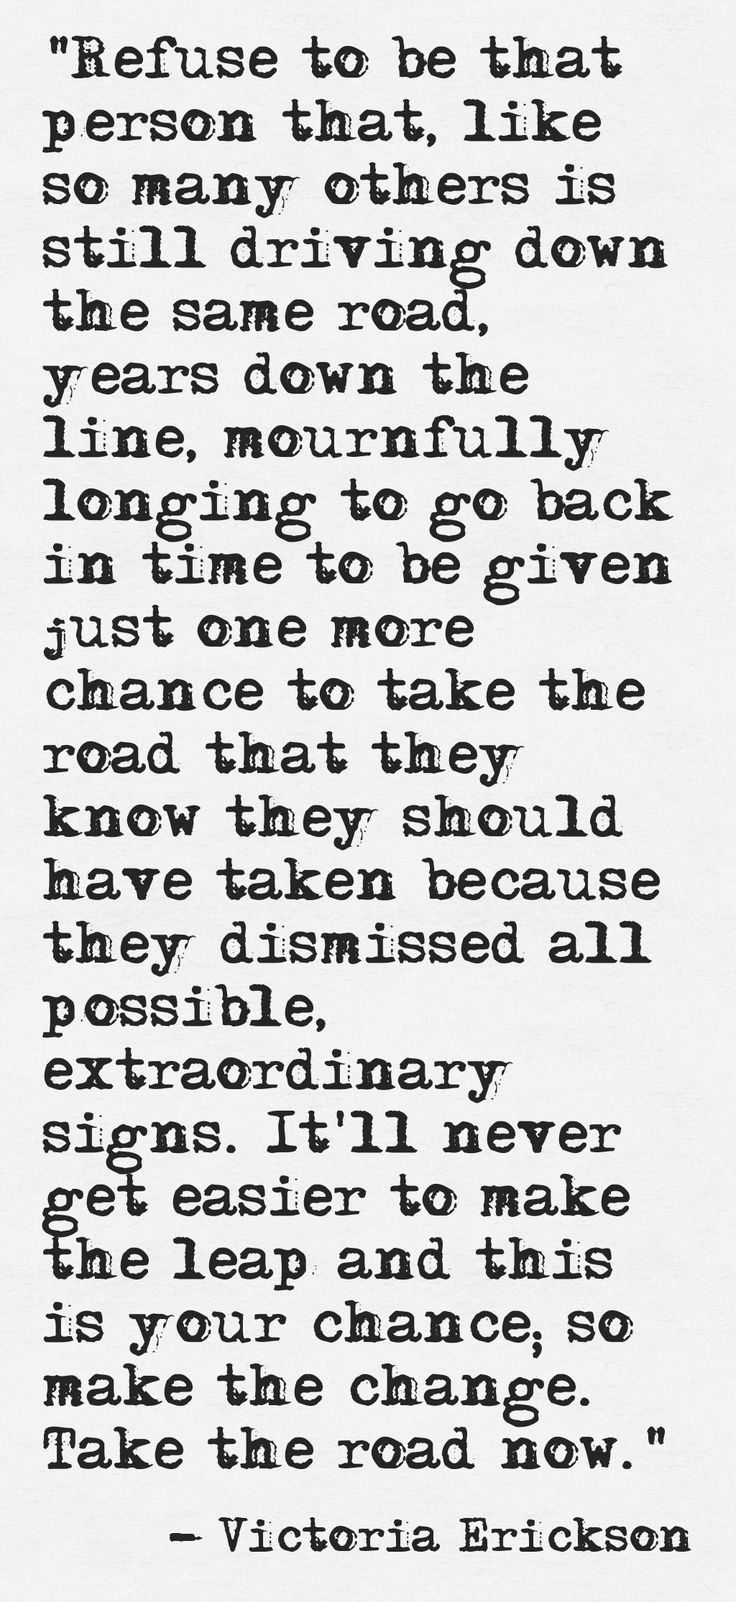 This was meant for me.  No question.  God sends me messages like this all the time.  Sometimes my head is like the hardest rock.  Unyielding. Unaccepting.  But God keeps whispering to my soul.  It is time for me to listen, accept and take action.  Don't be a scare bear, unafraid to take chances.  #The time is now